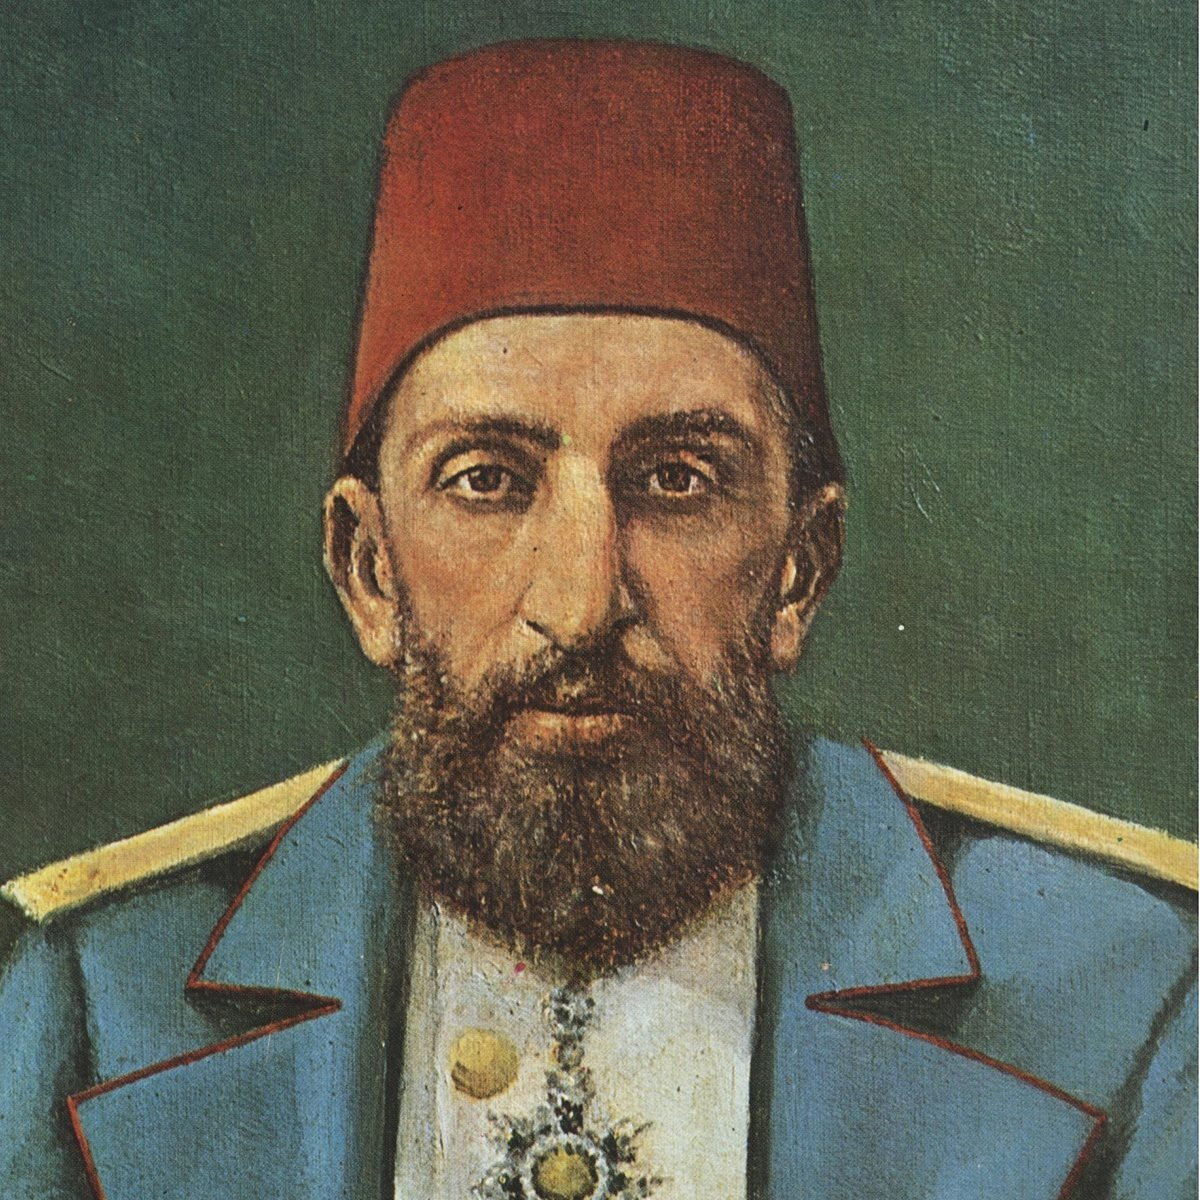 A portrait painting of Sultan Abdülhamid II. (Archive Photo)